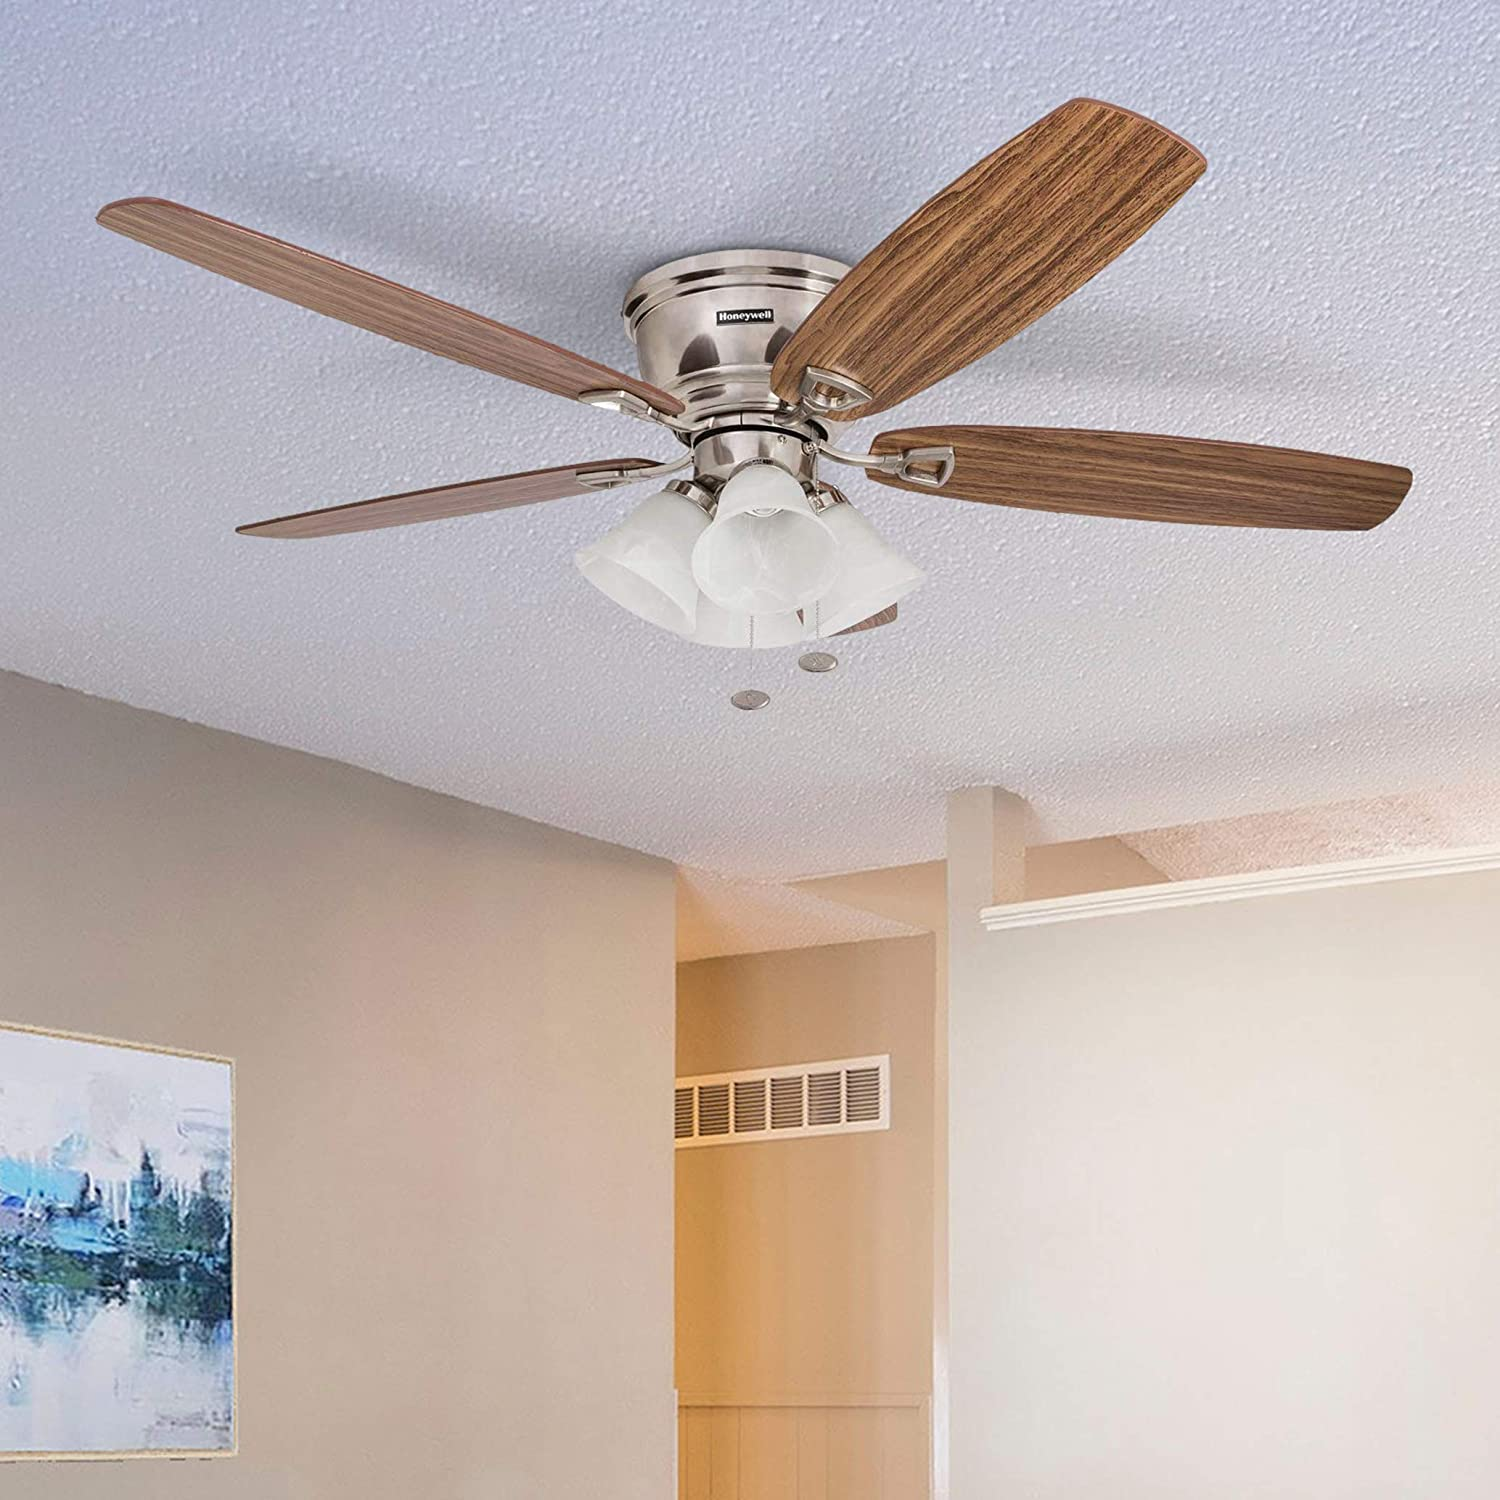 Ceiling Fans Come in Many Types Most Traditional Different